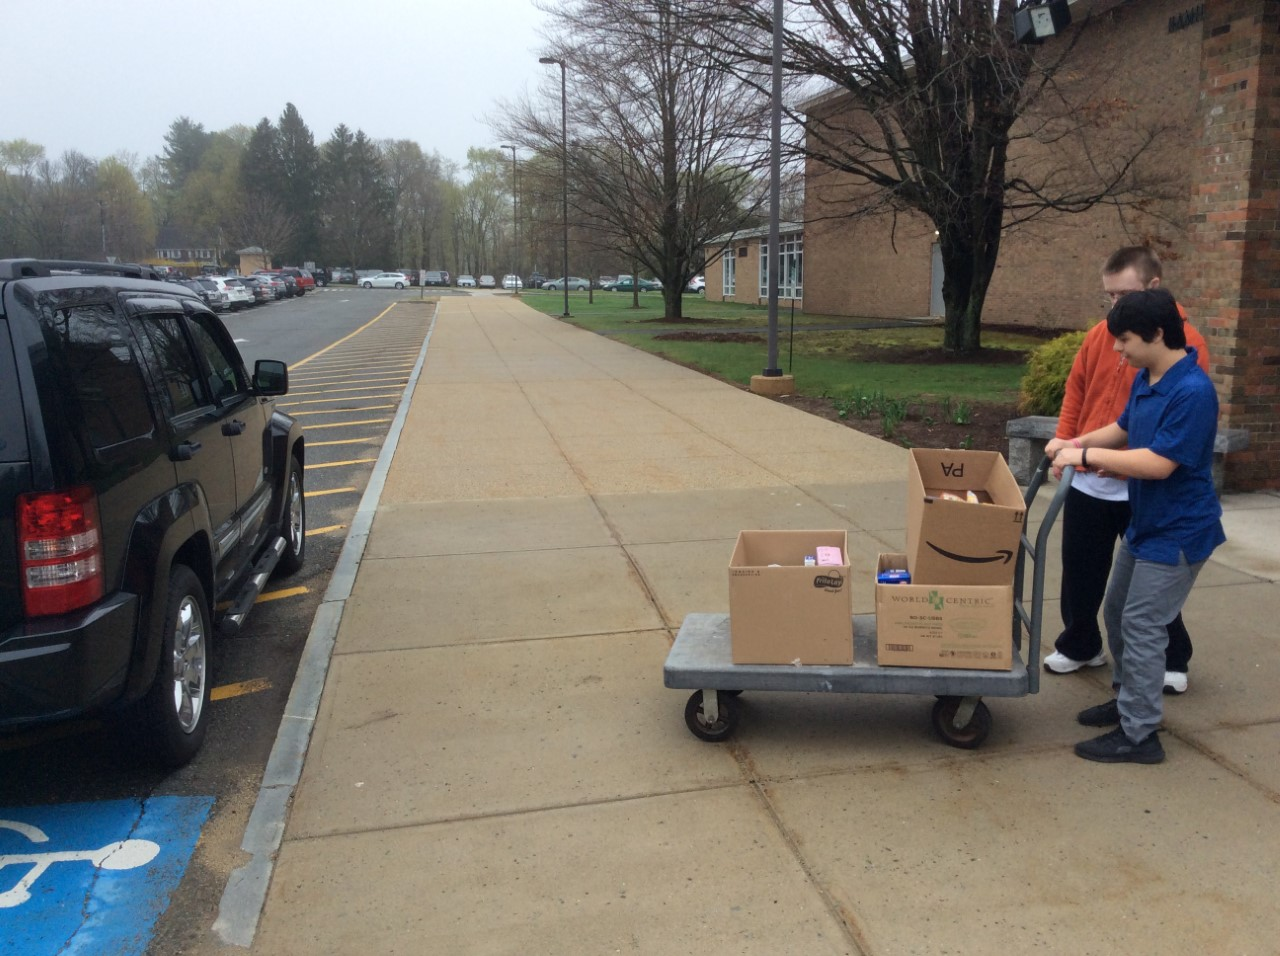 Max Vanderwilden ('21) and Timothy LaBudde ('21) loading the donated food into Ms. Nygren's car